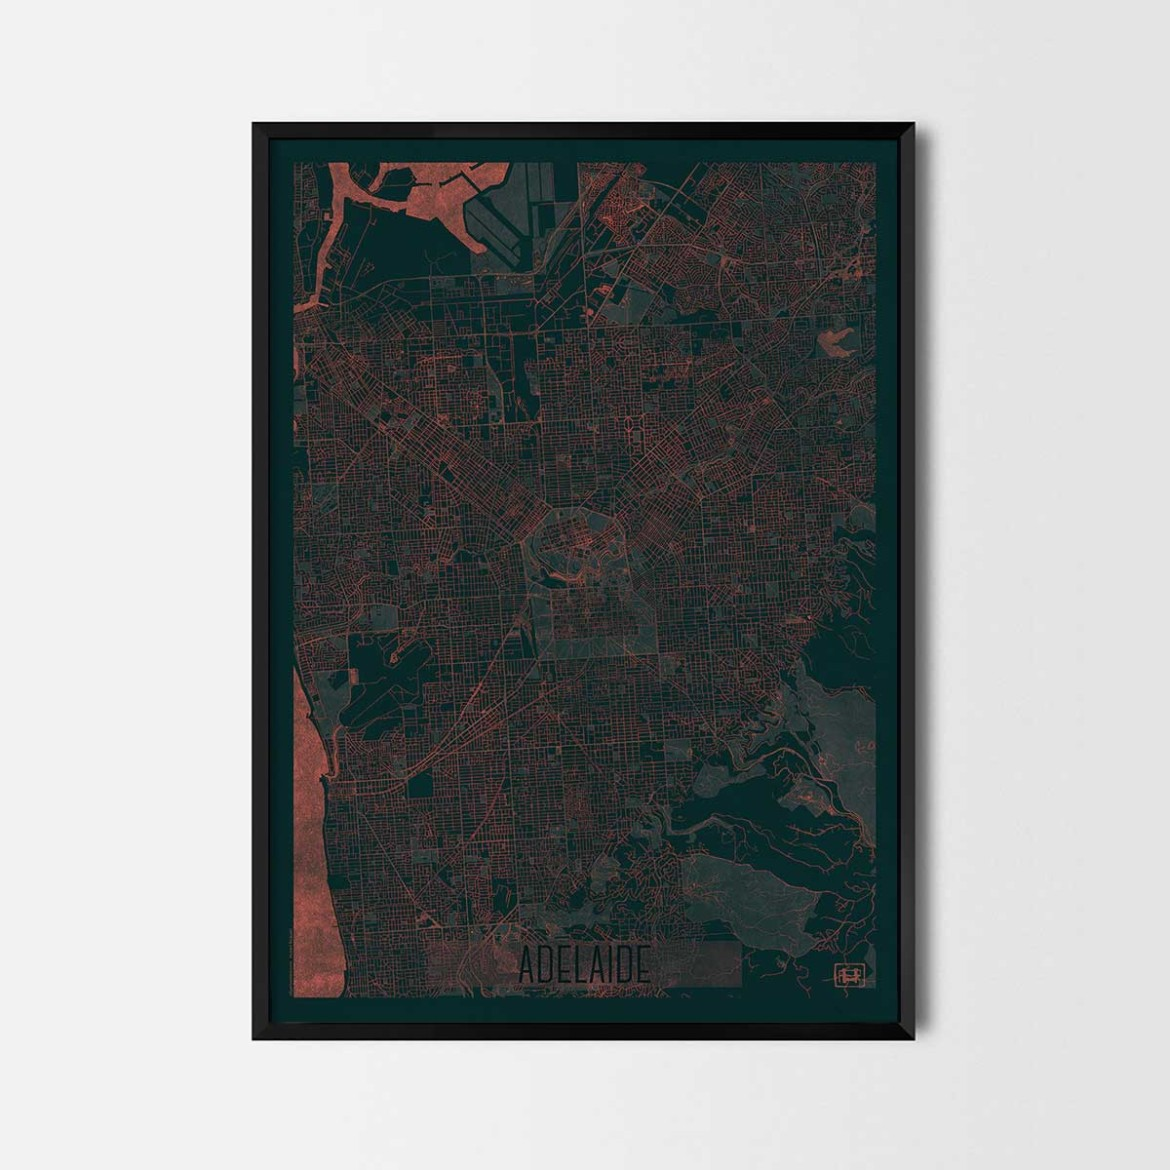 Adelaide gift map art prints and posters home decor gifts for Home decorations adelaide